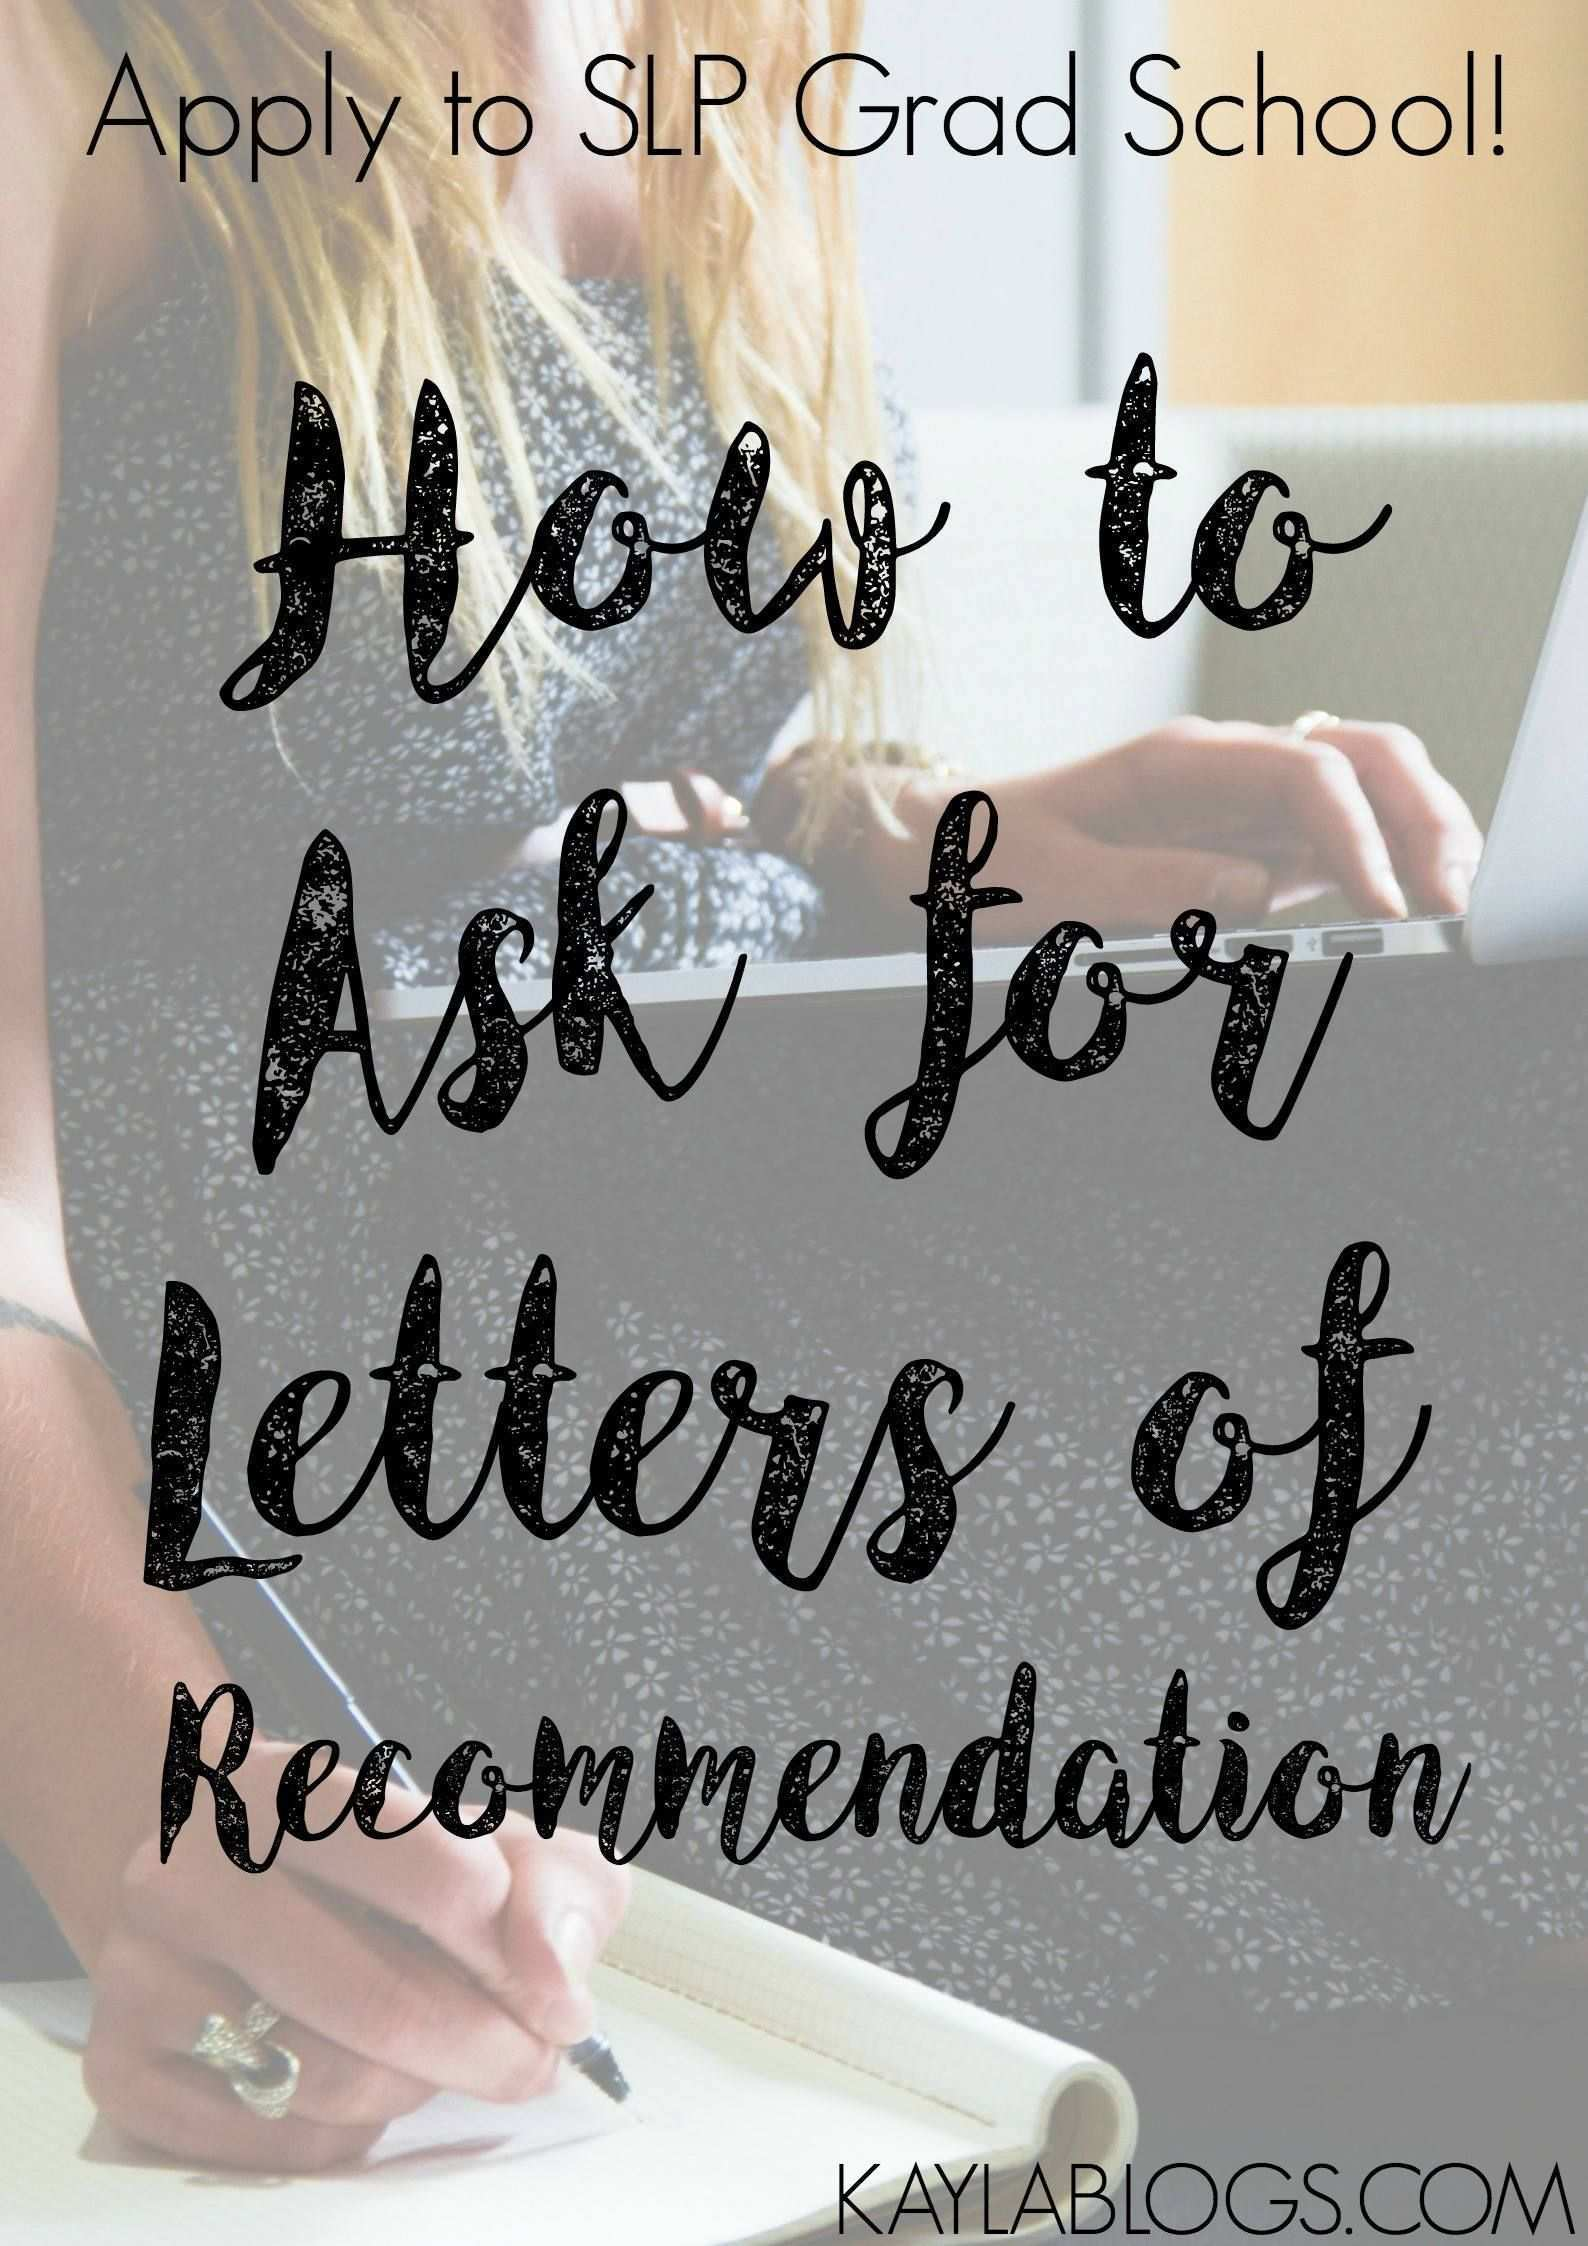 How To Ask For Recommendation Letters When Applying To Graduate School For Speech Pathology Or Another Major Empfehlungsschreiben Bildungsniveau Schreiben